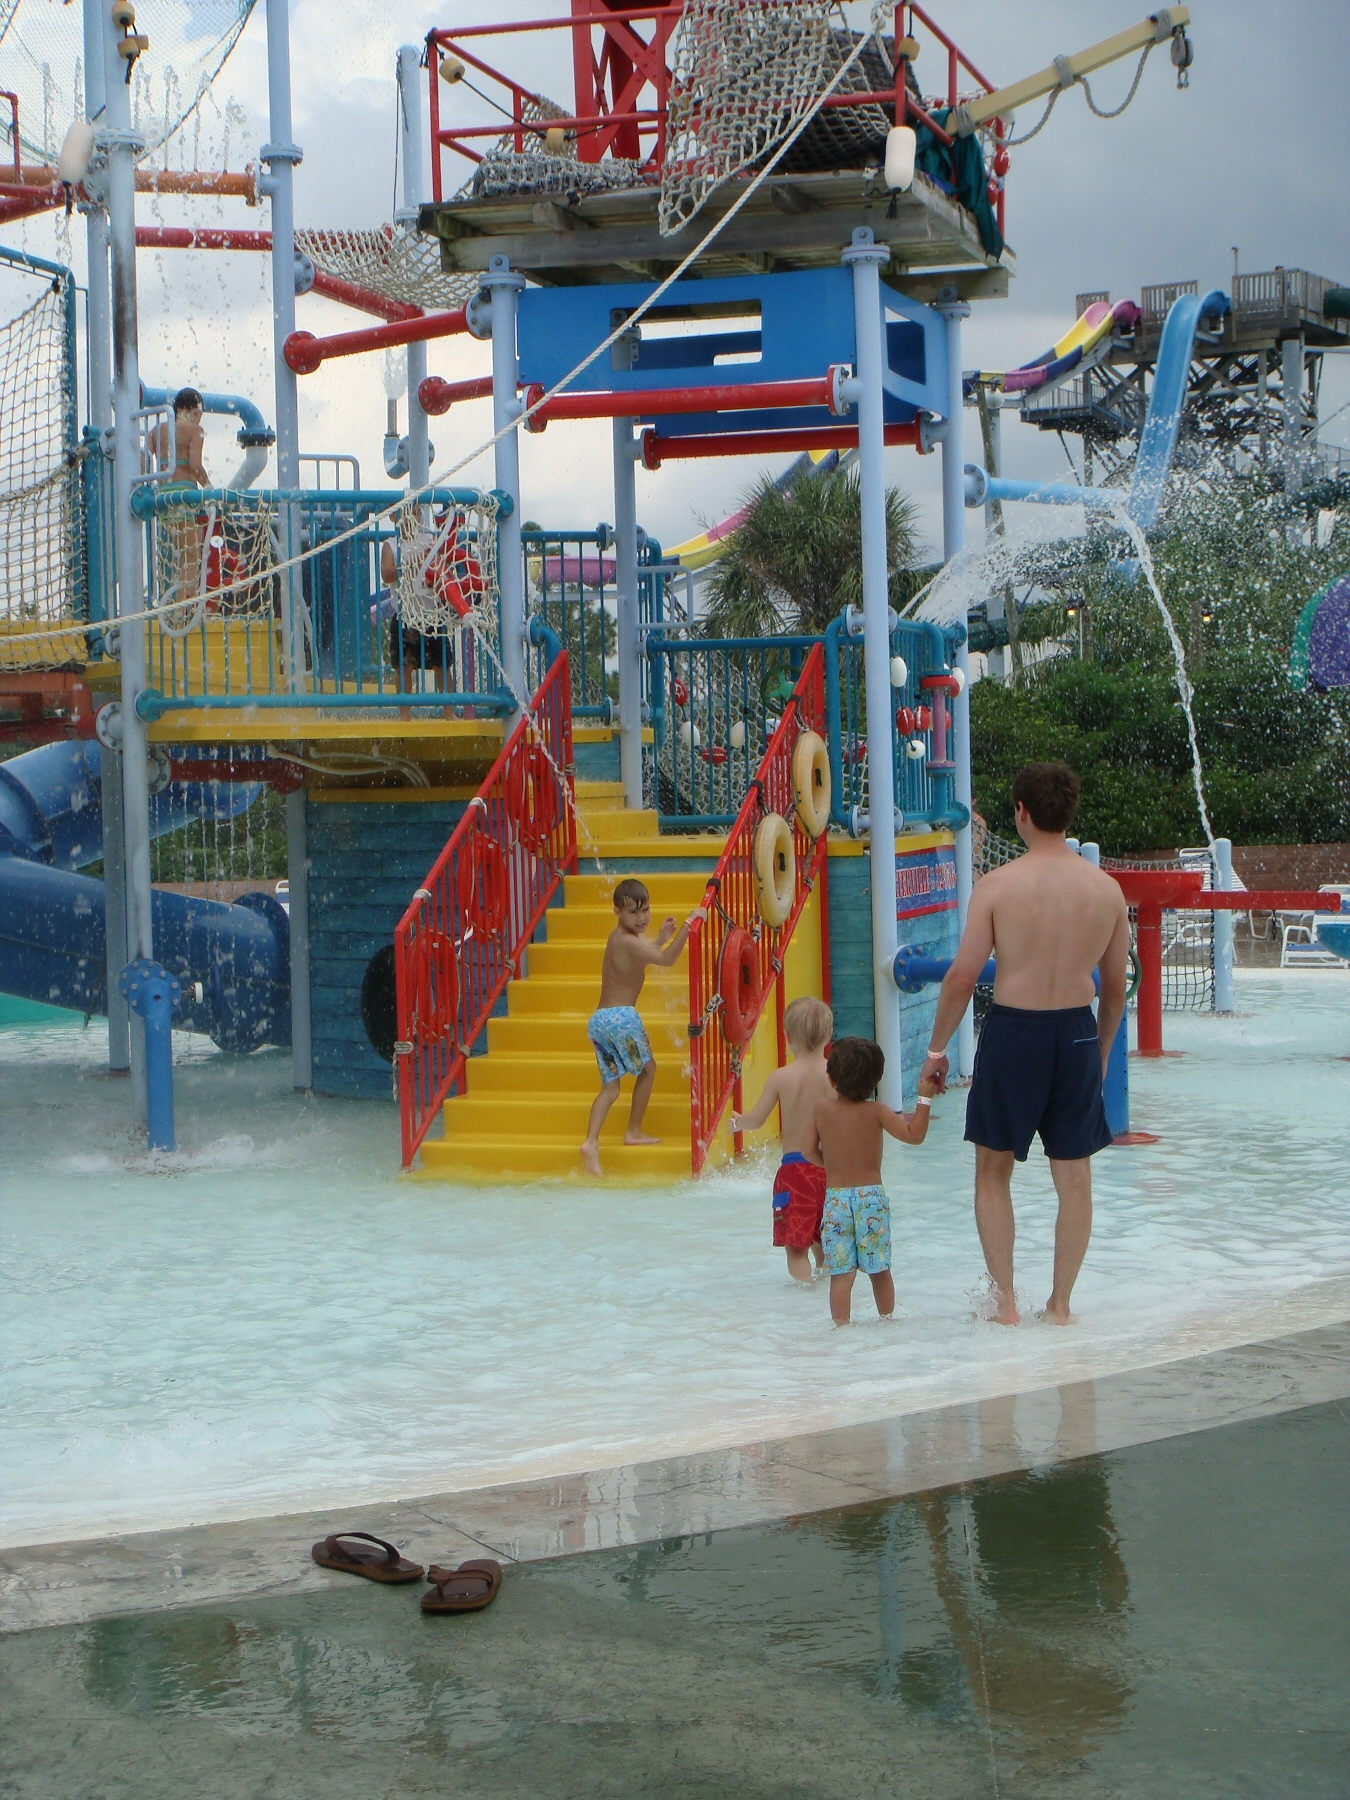 jungle gym at water park